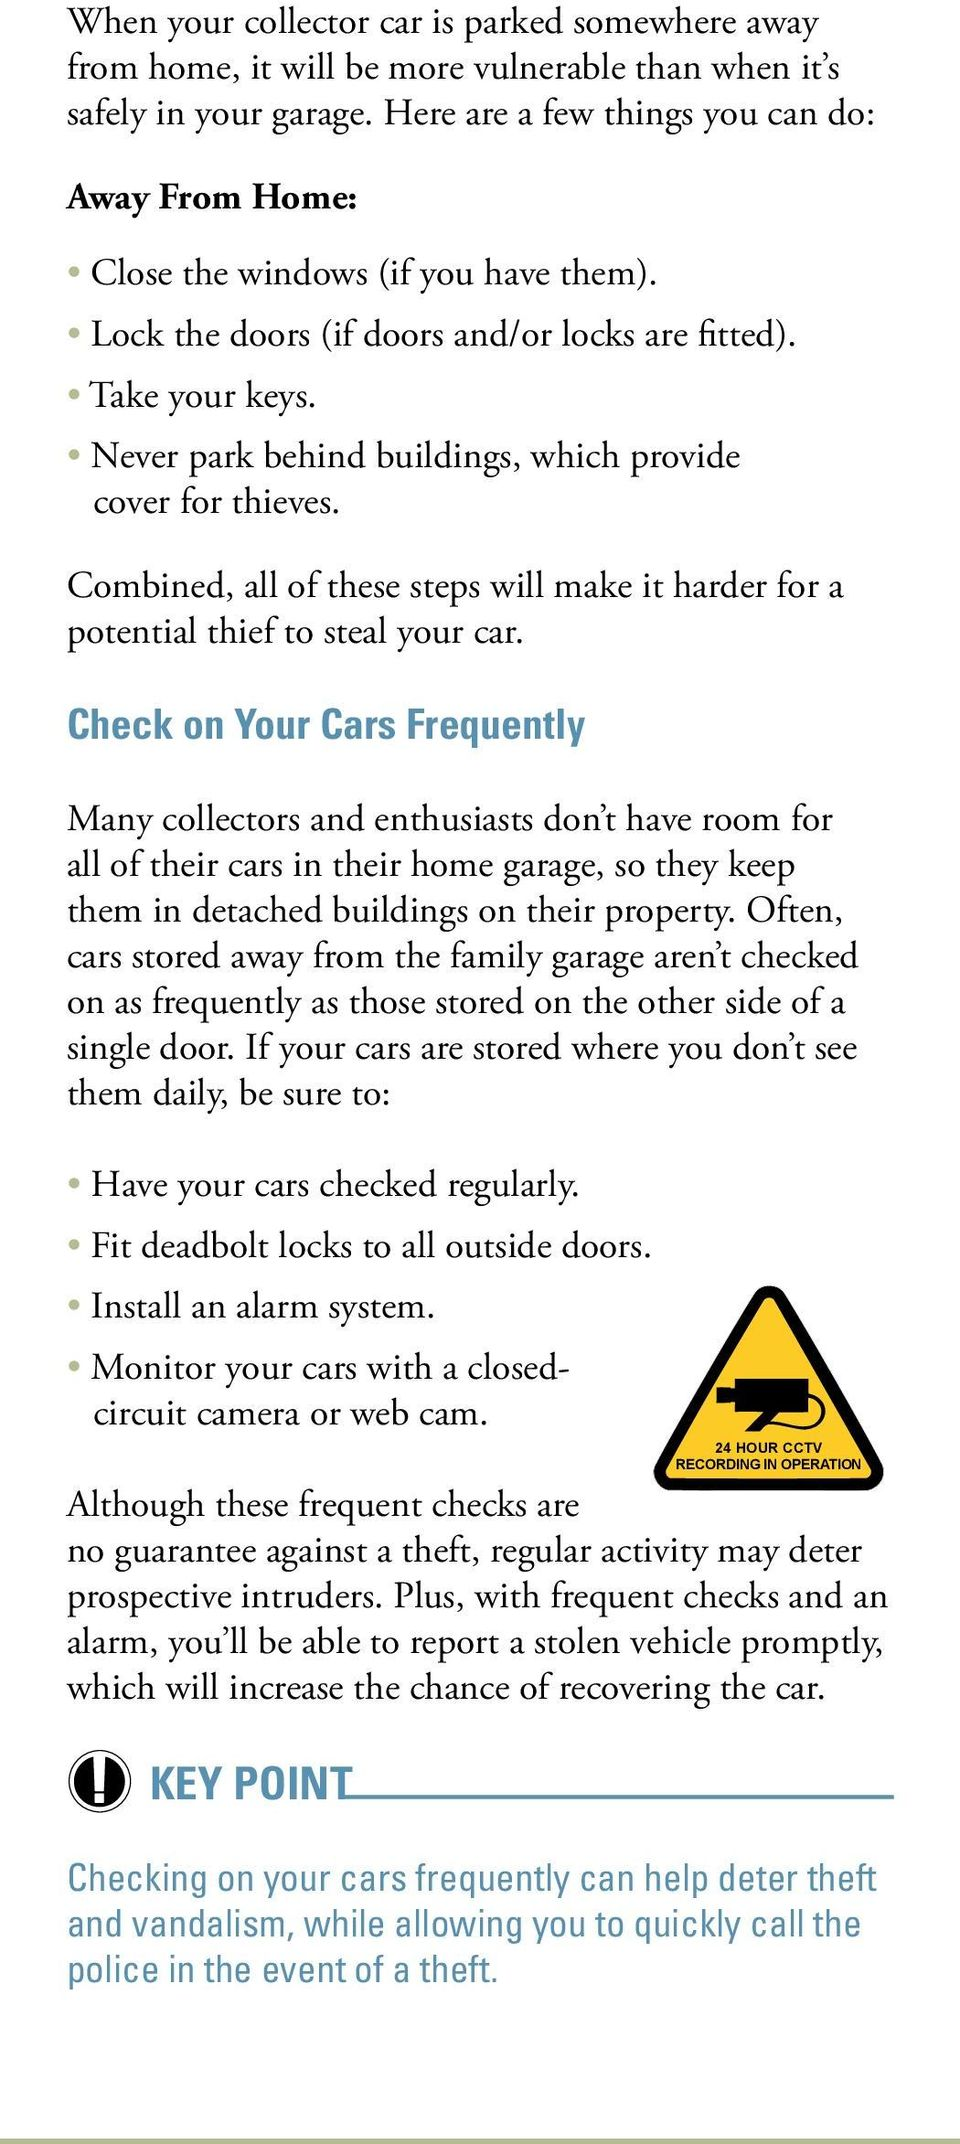 Never park behind buildings, which provide cover for thieves. Combined, all of these steps will make it harder for a potential thief to steal your car.